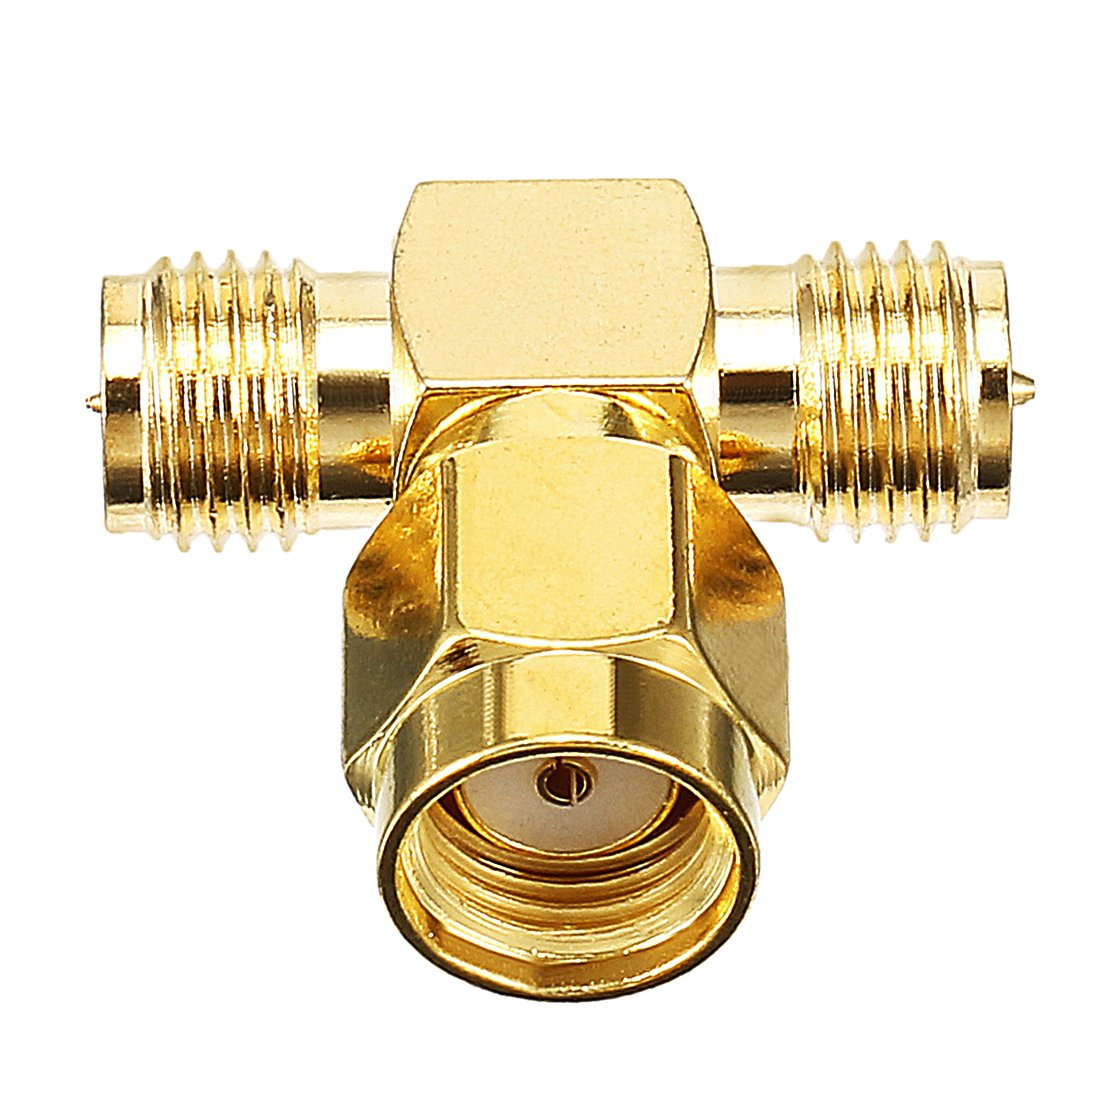 sourcing map Gold Tone 3 Way RP-SMA Male to RP-SMA Female Jack RF Coaxial Connector Joiners